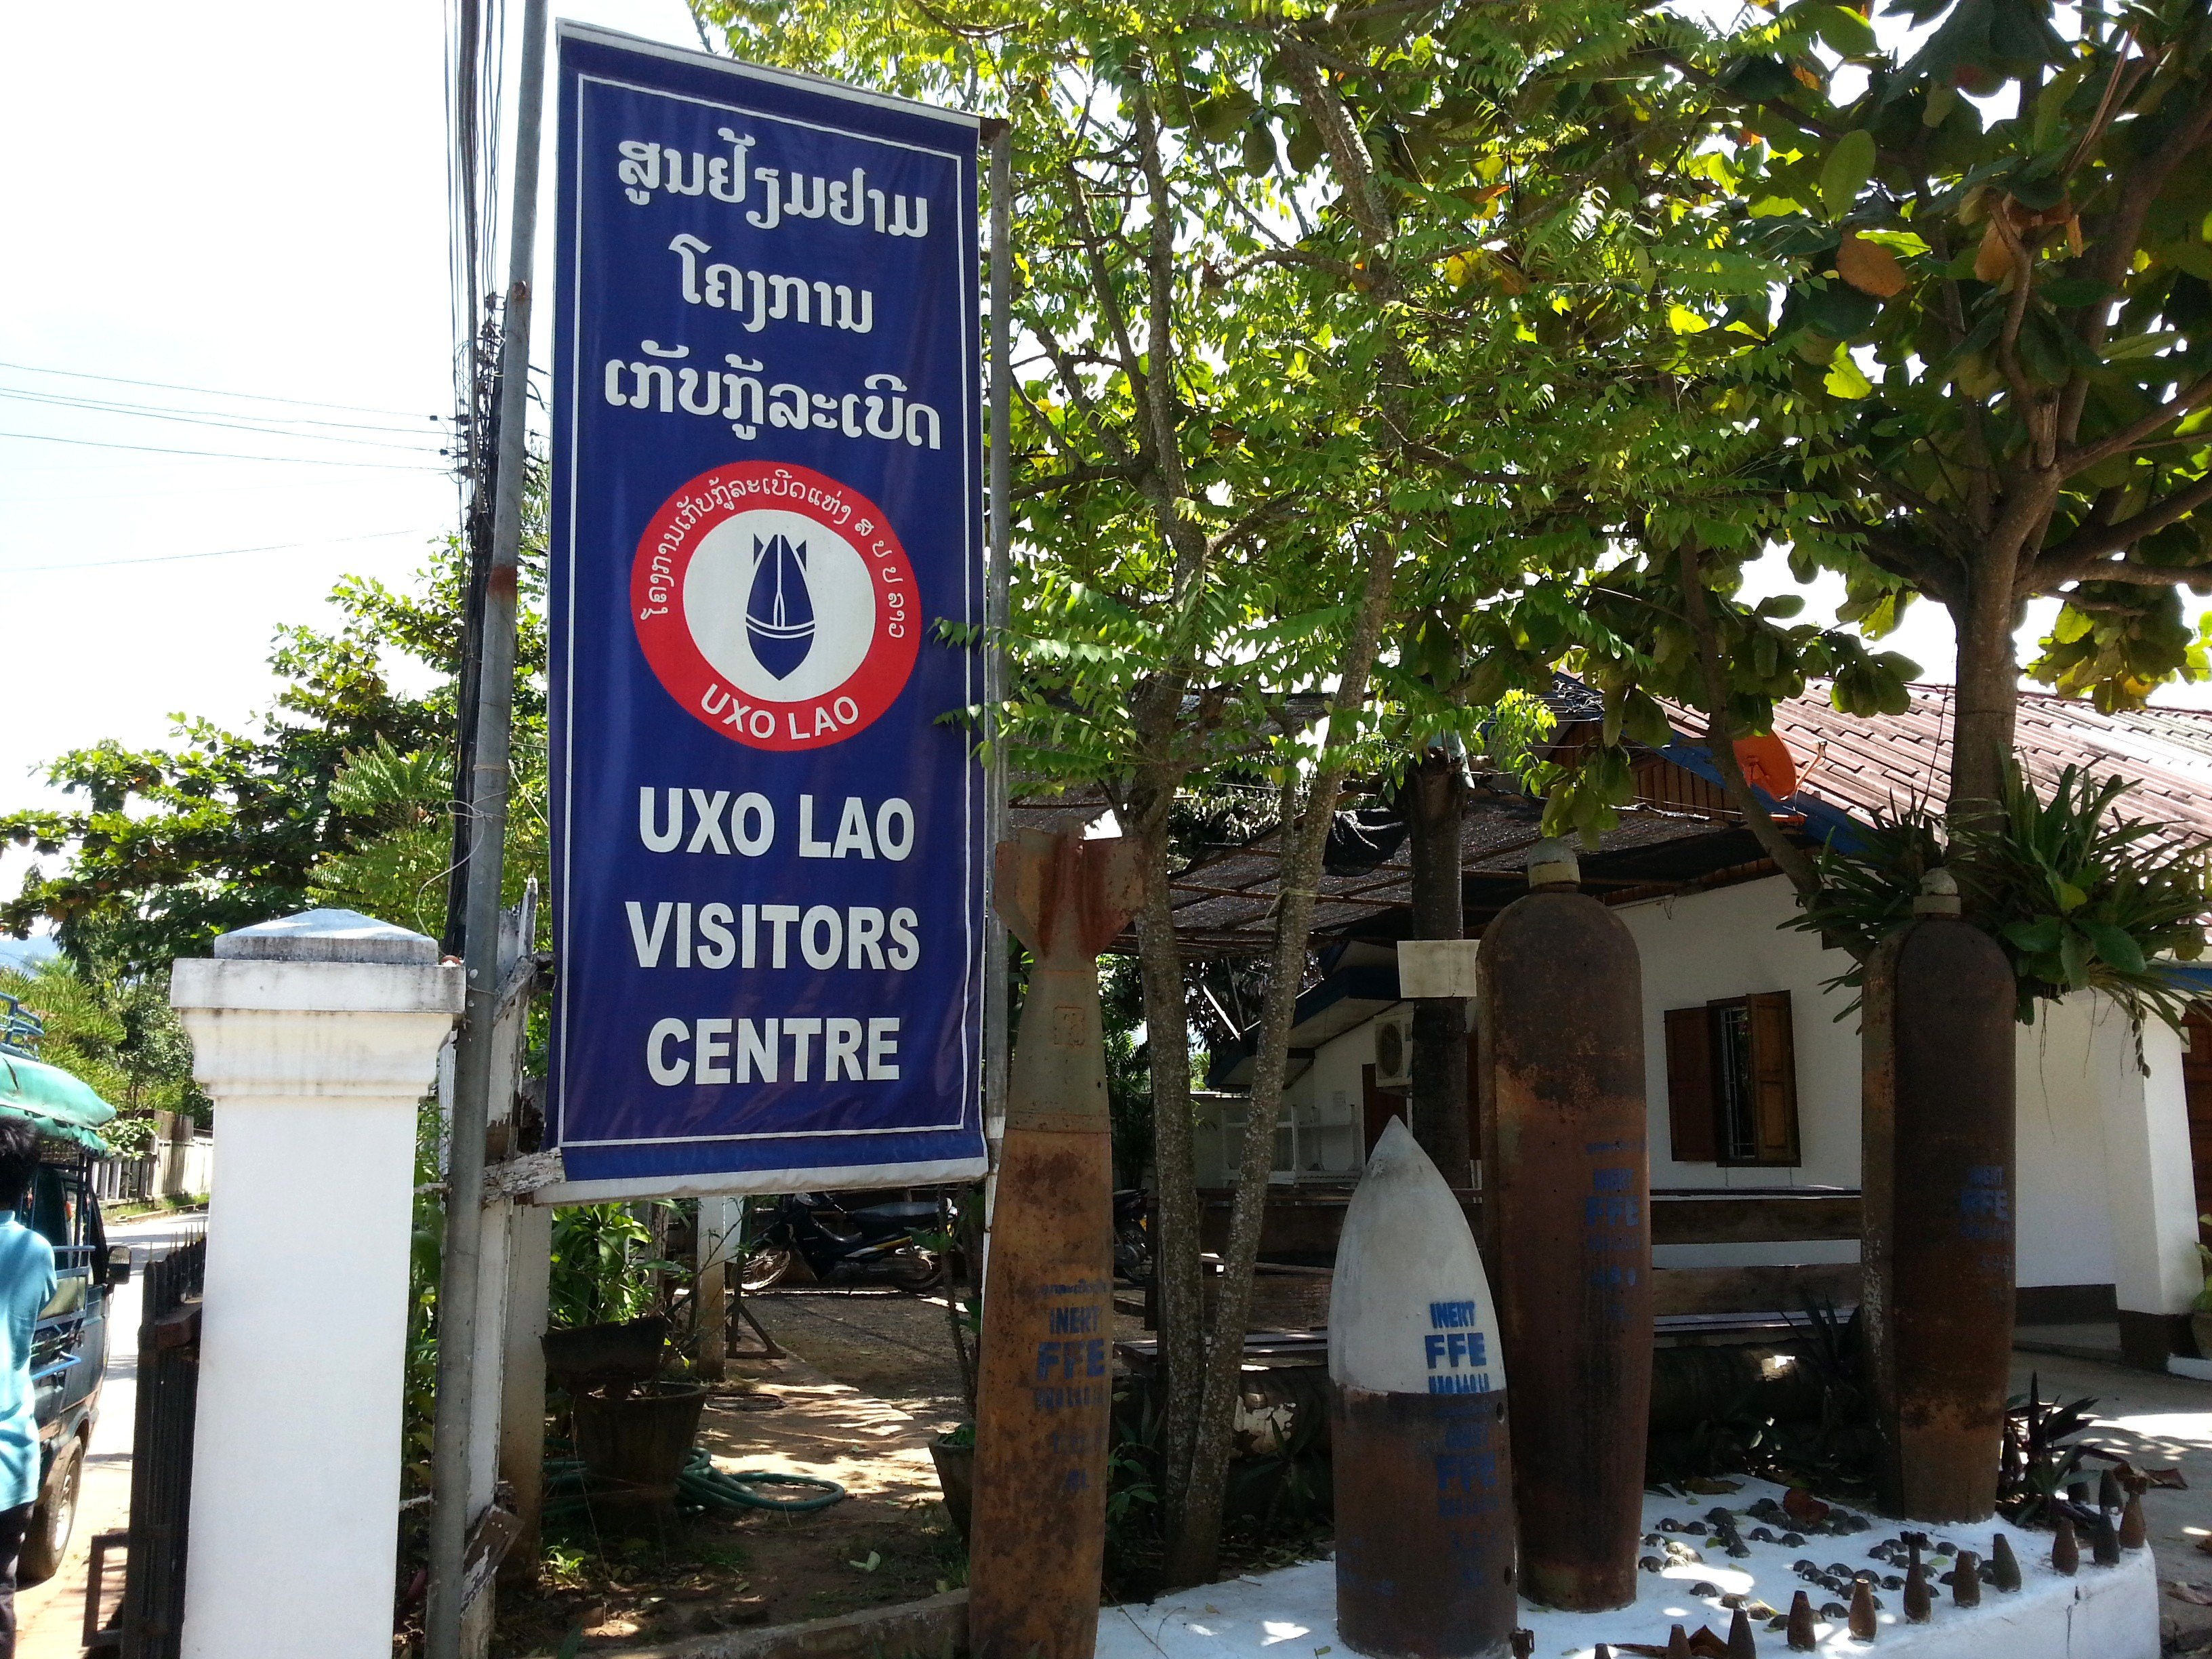 Entrance to UXO Lao Visitors Centre